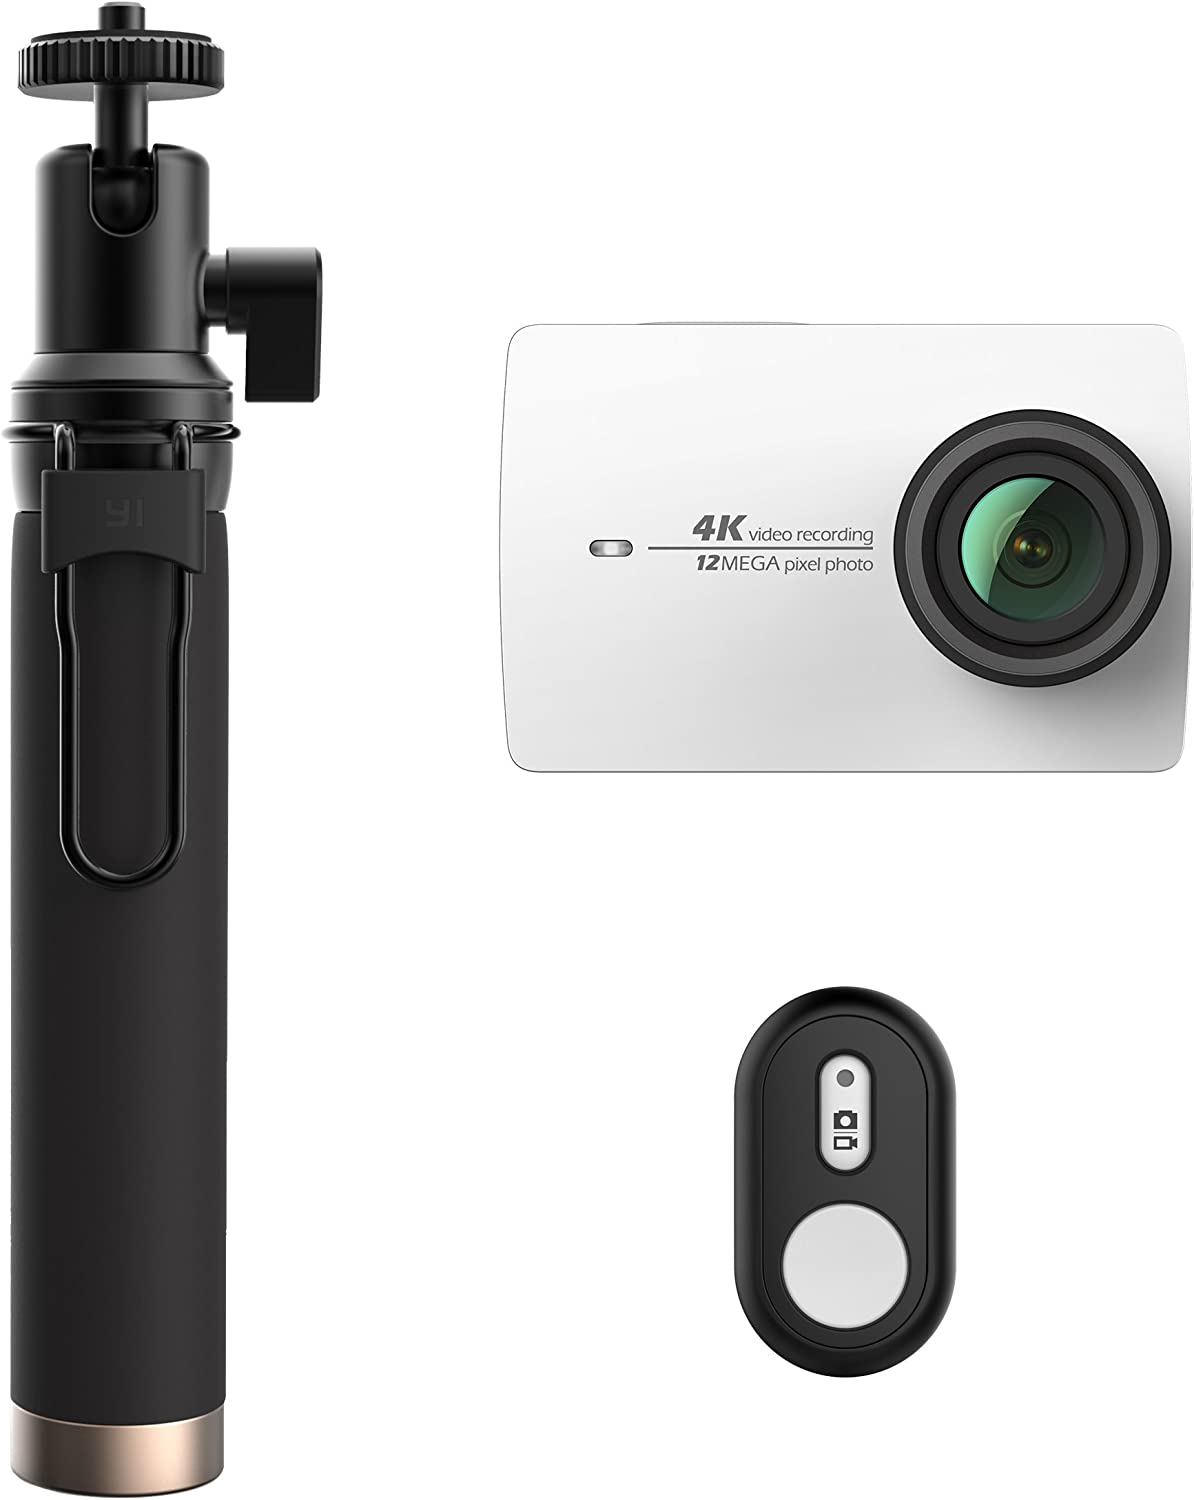 YI 4K Popular popular Action and Sports Camera Bundle Stick Free shipping on posting reviews Vid 30fps Selfie